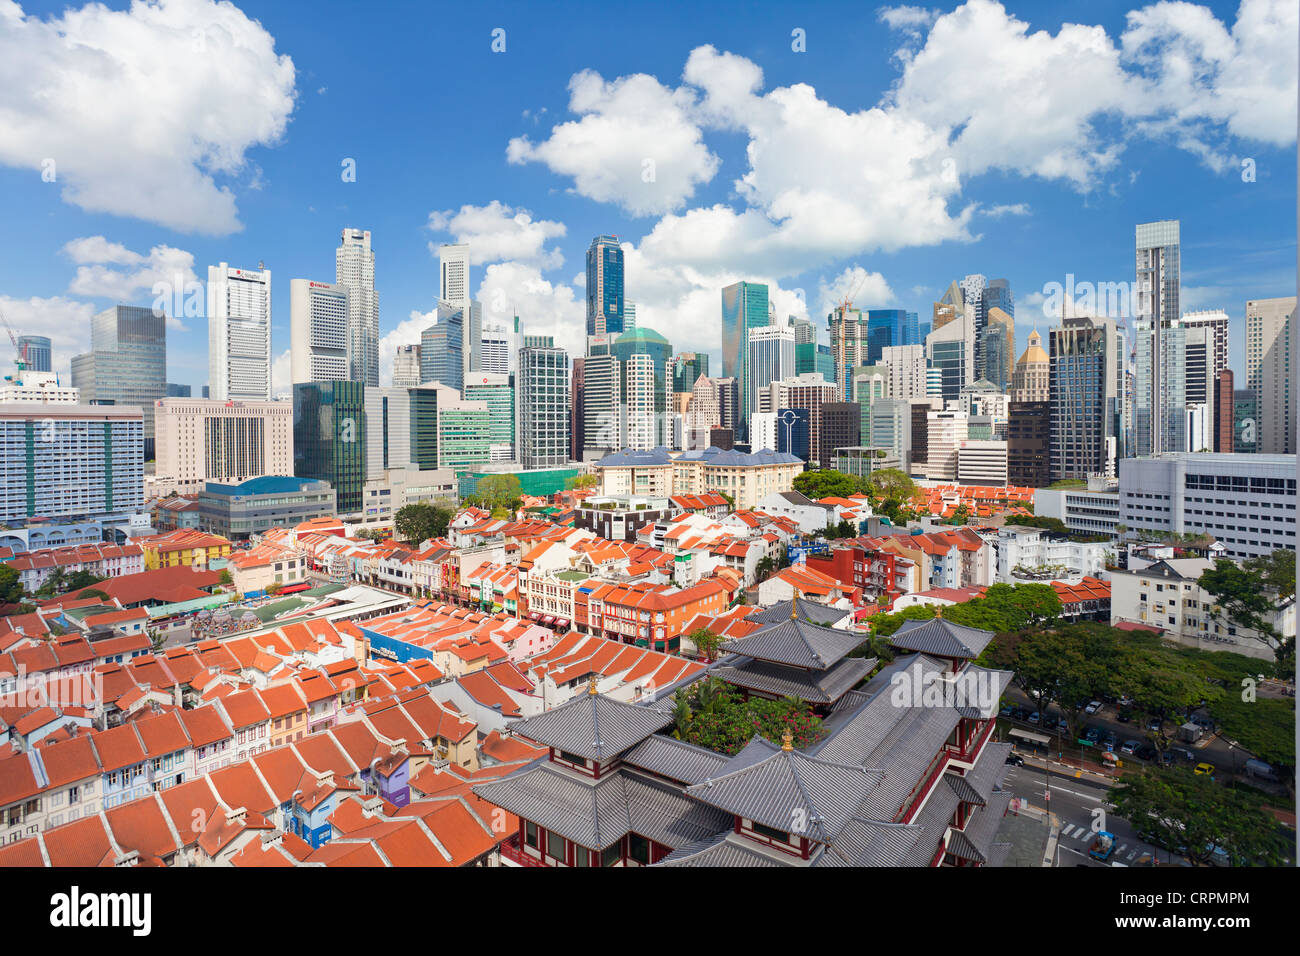 Elevated view over traditional houses in Chinatown, Singapore, Southeast Asia, Asia - Stock Image